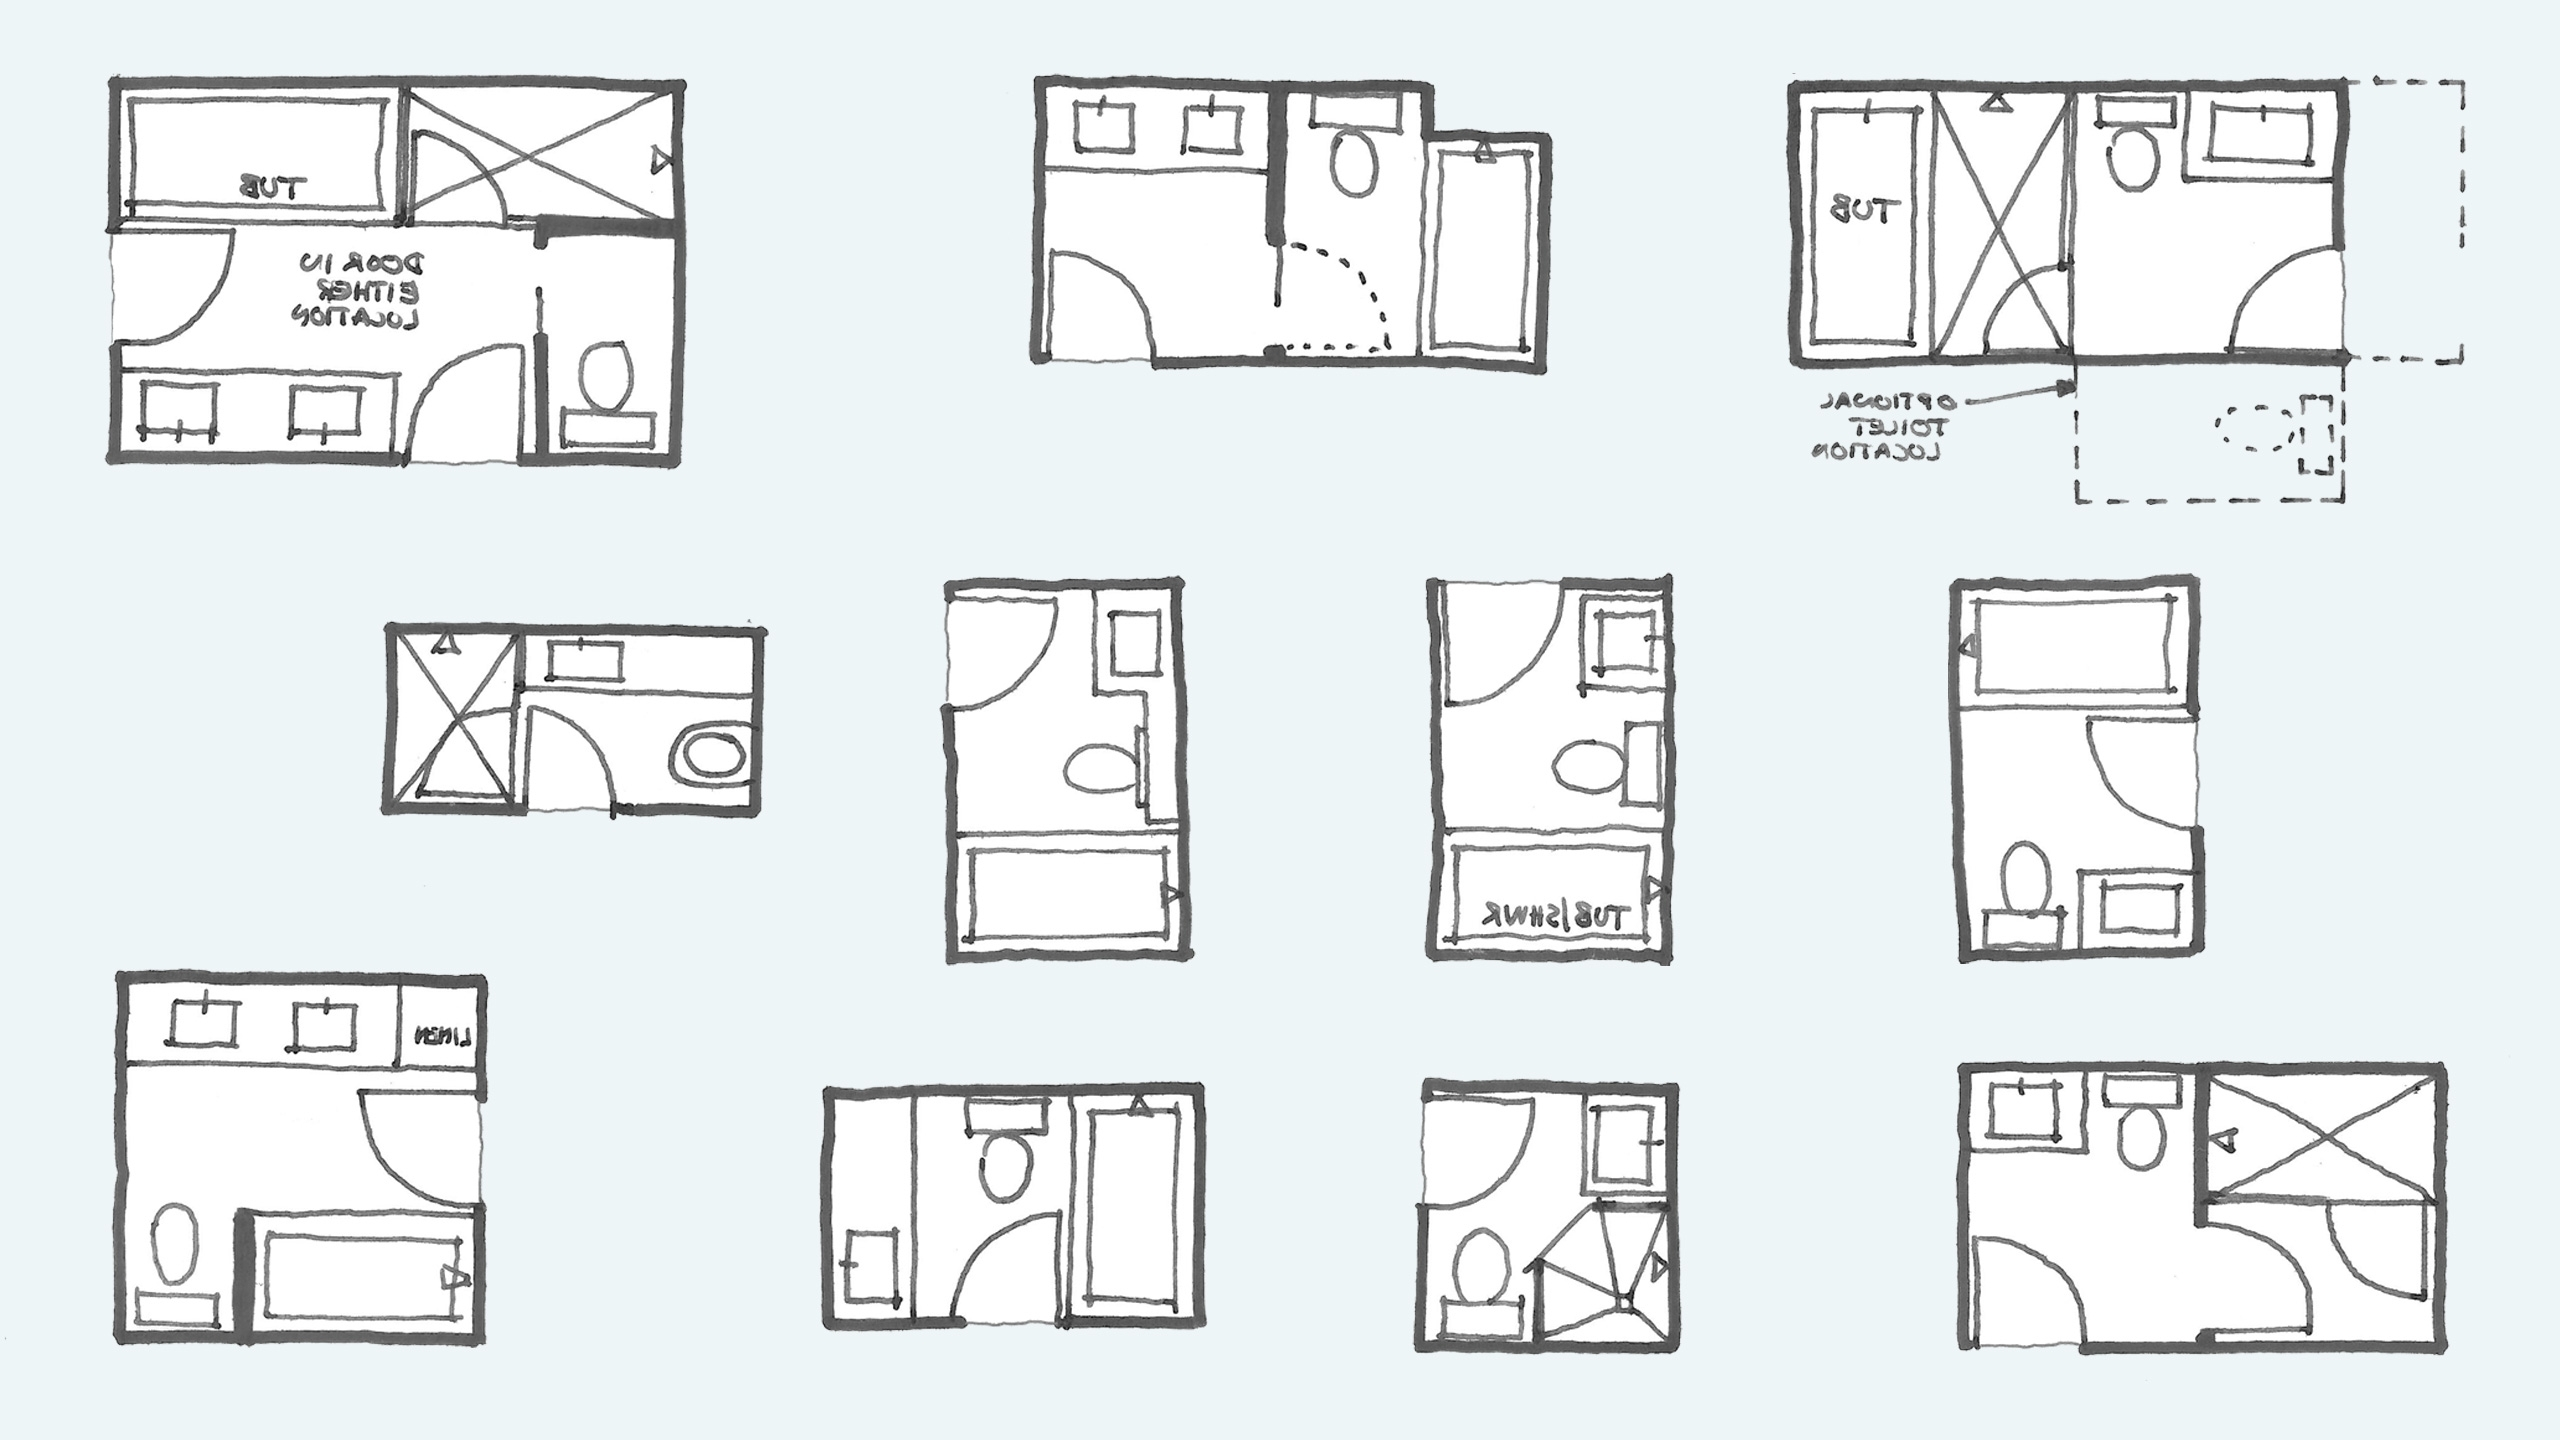 Common Bathroom Floor Plans: Rules Of Thumb For Layout Bathroom Design Layout Planner